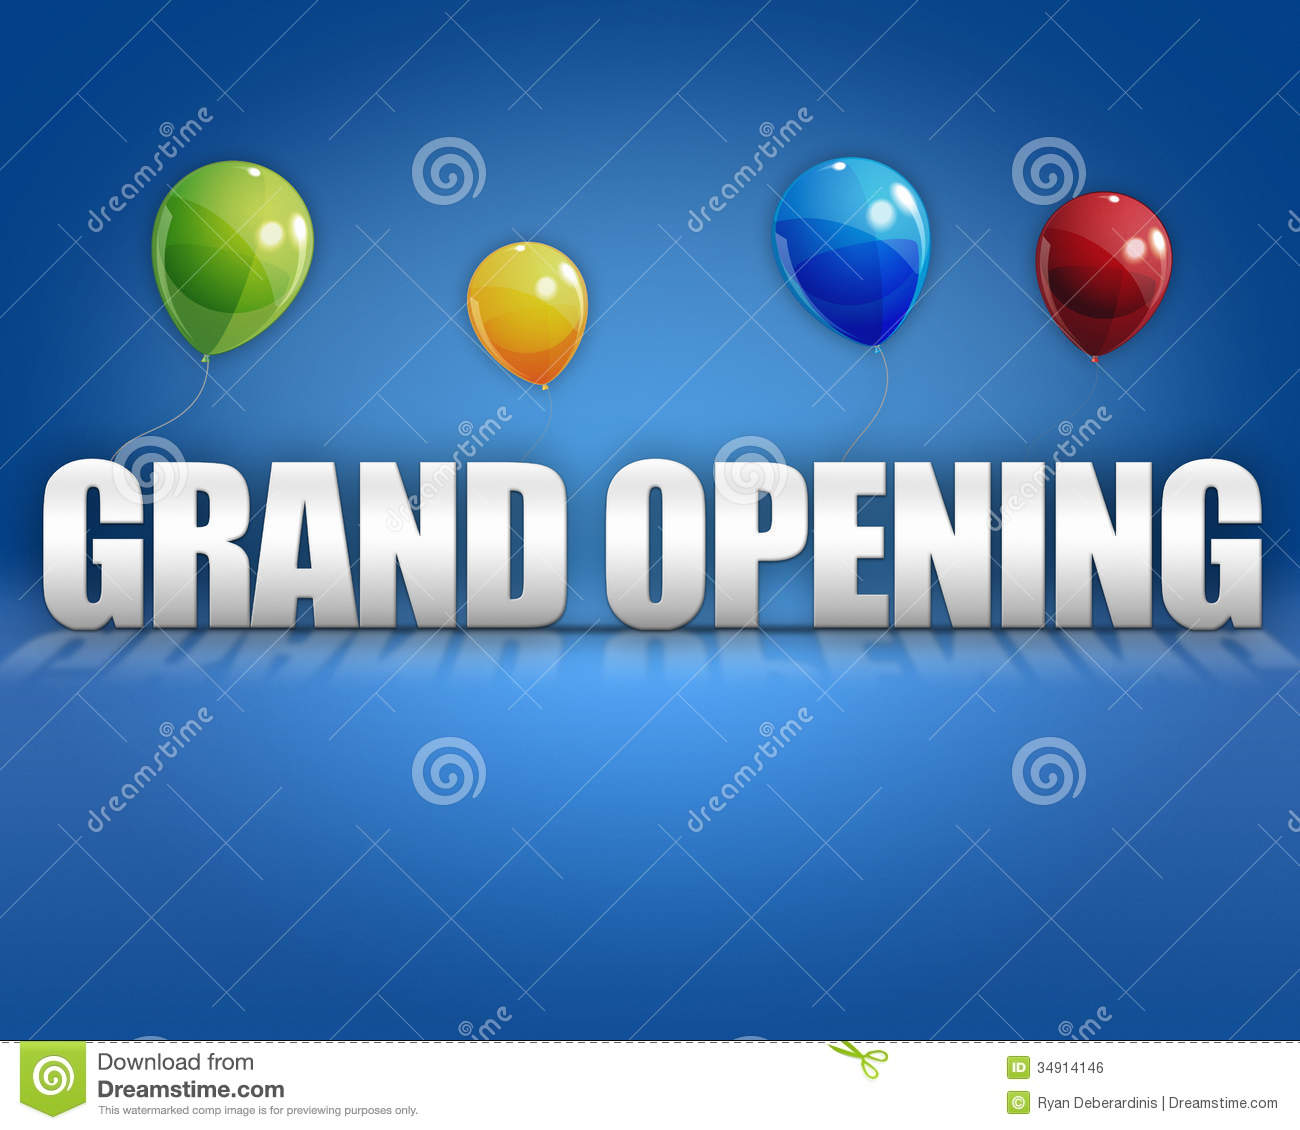 3d Grand Opening Balloons Background Royalty Free Stock Image - Image ...